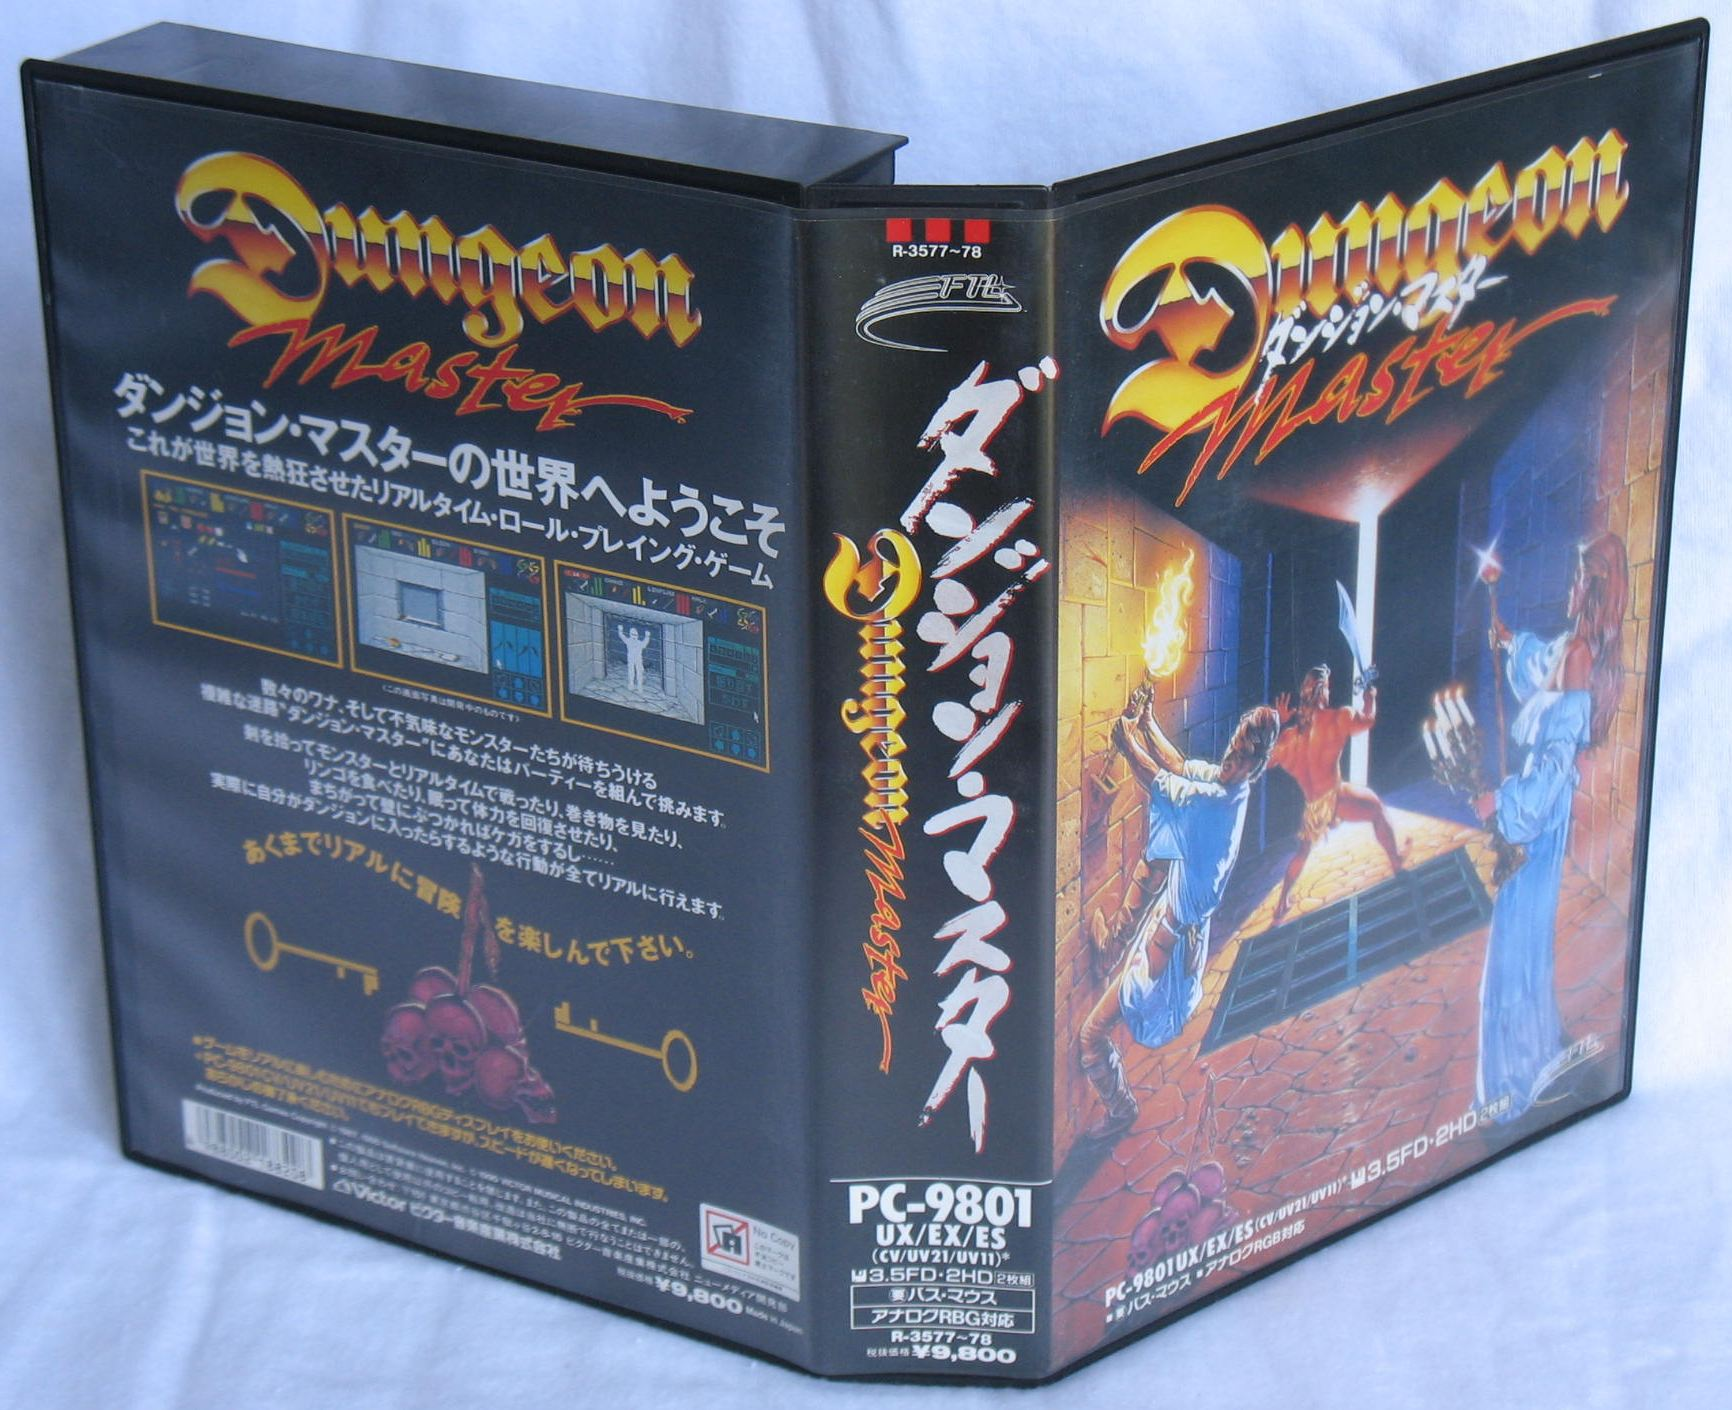 Game - Dungeon Master - JP - PC-9801 - 3.5-inch - Box - Front Back Left Top - Photo